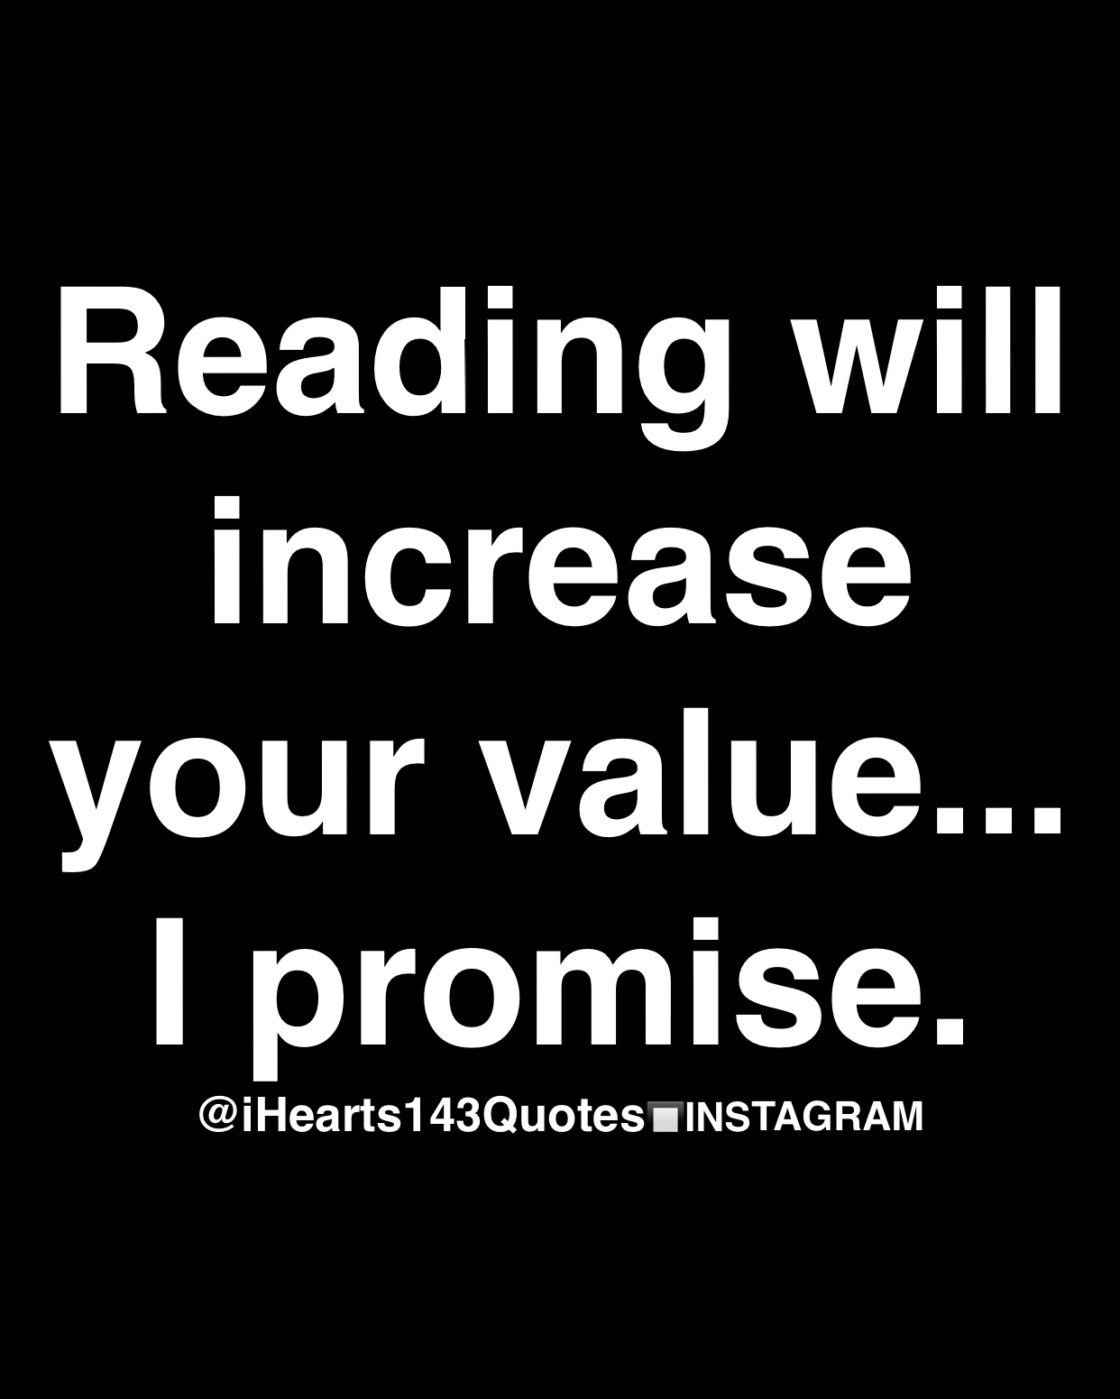 I Promise Quotes Life  Page 47  Ihearts143Quotes